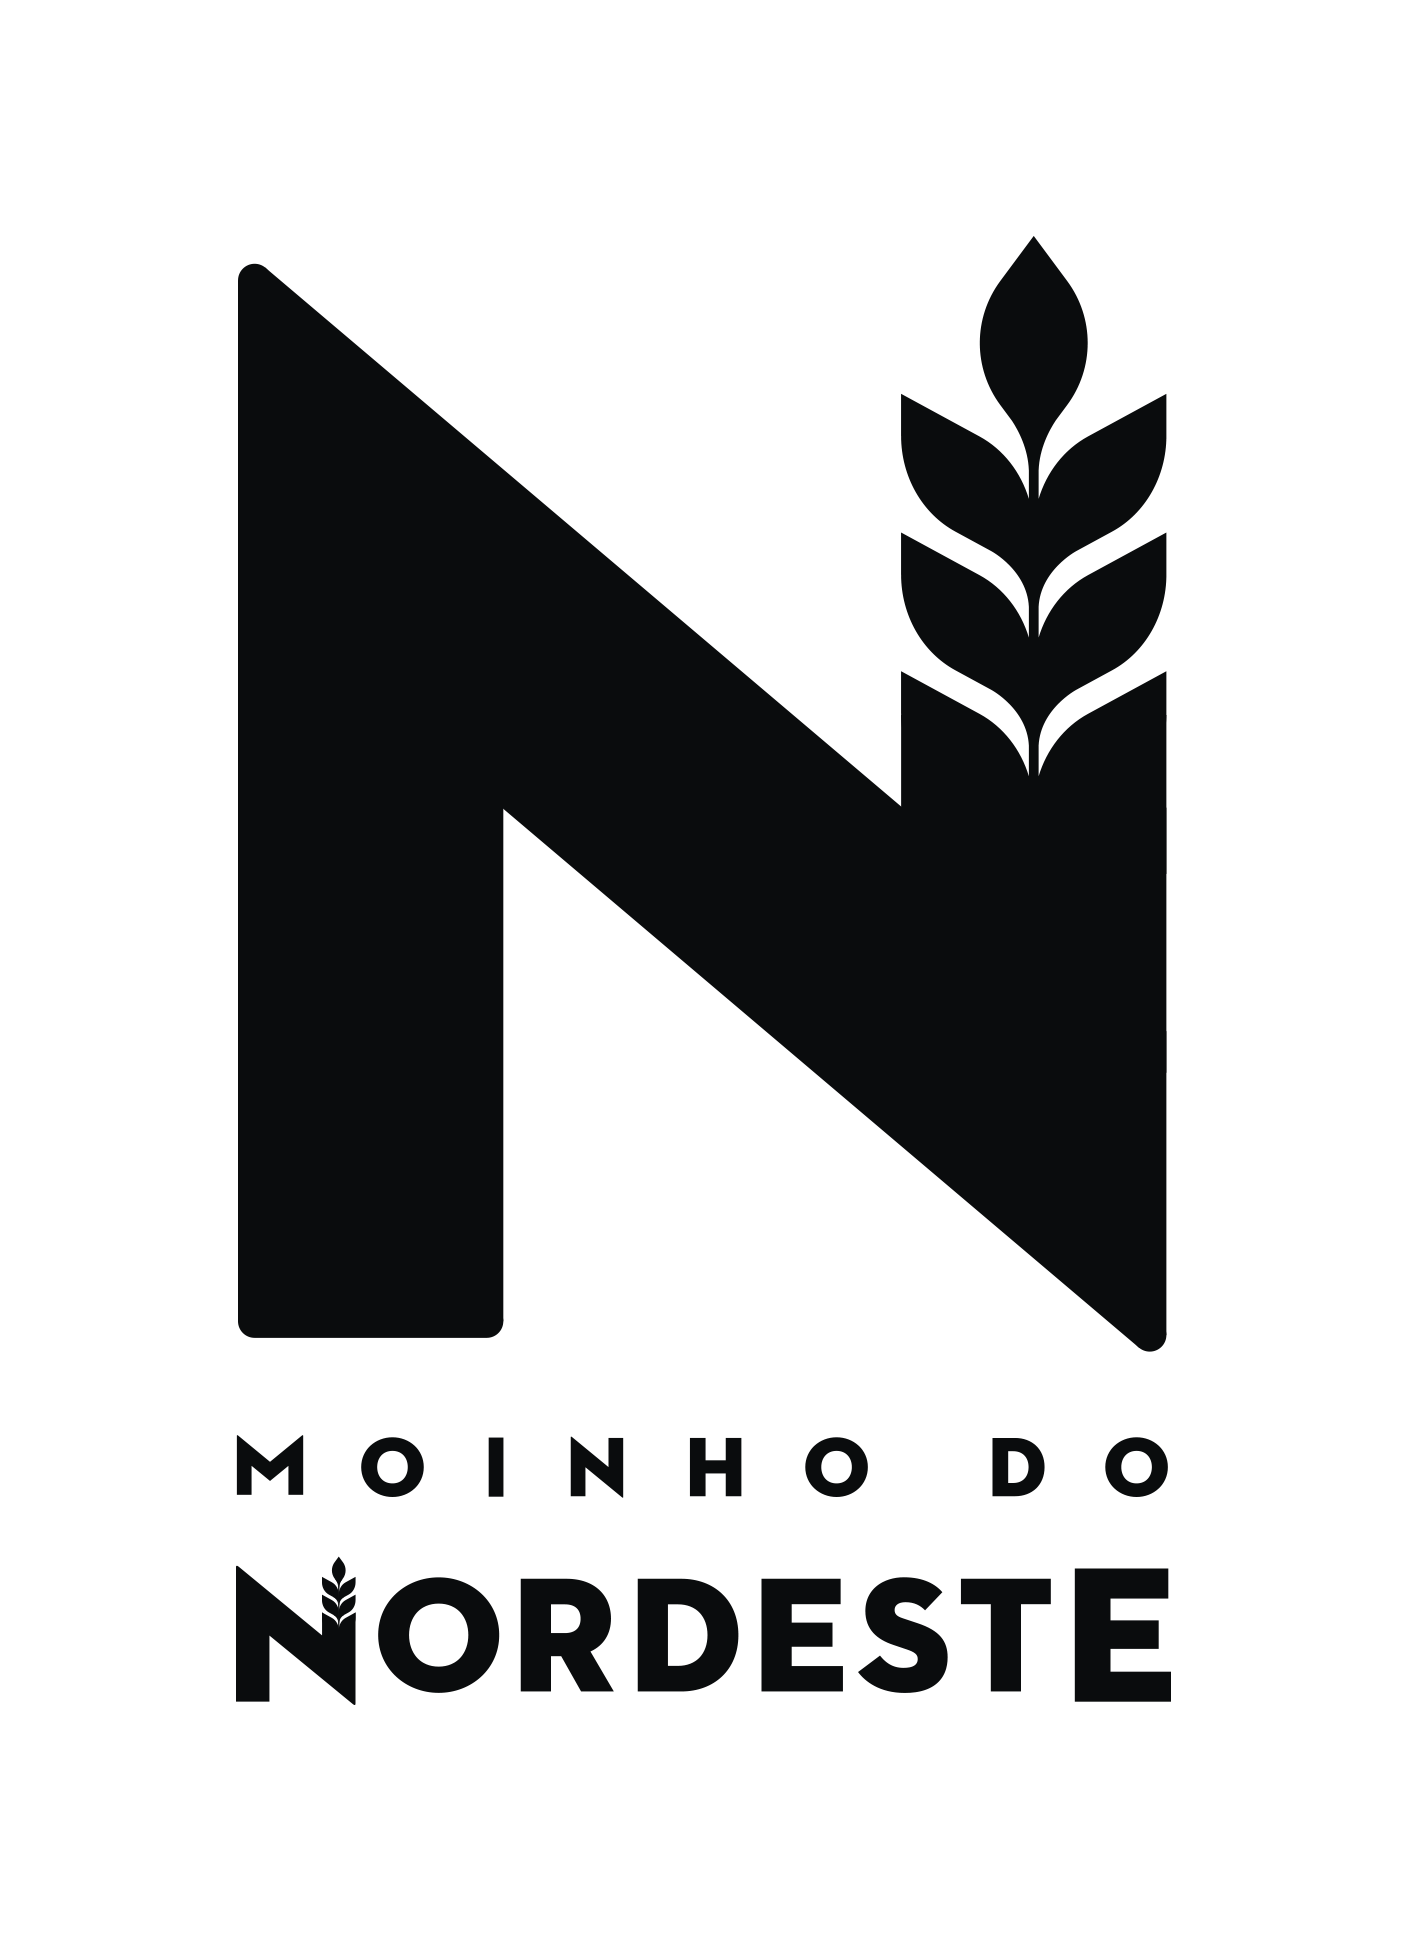 Logotipo Vertical Moinho do Nordeste